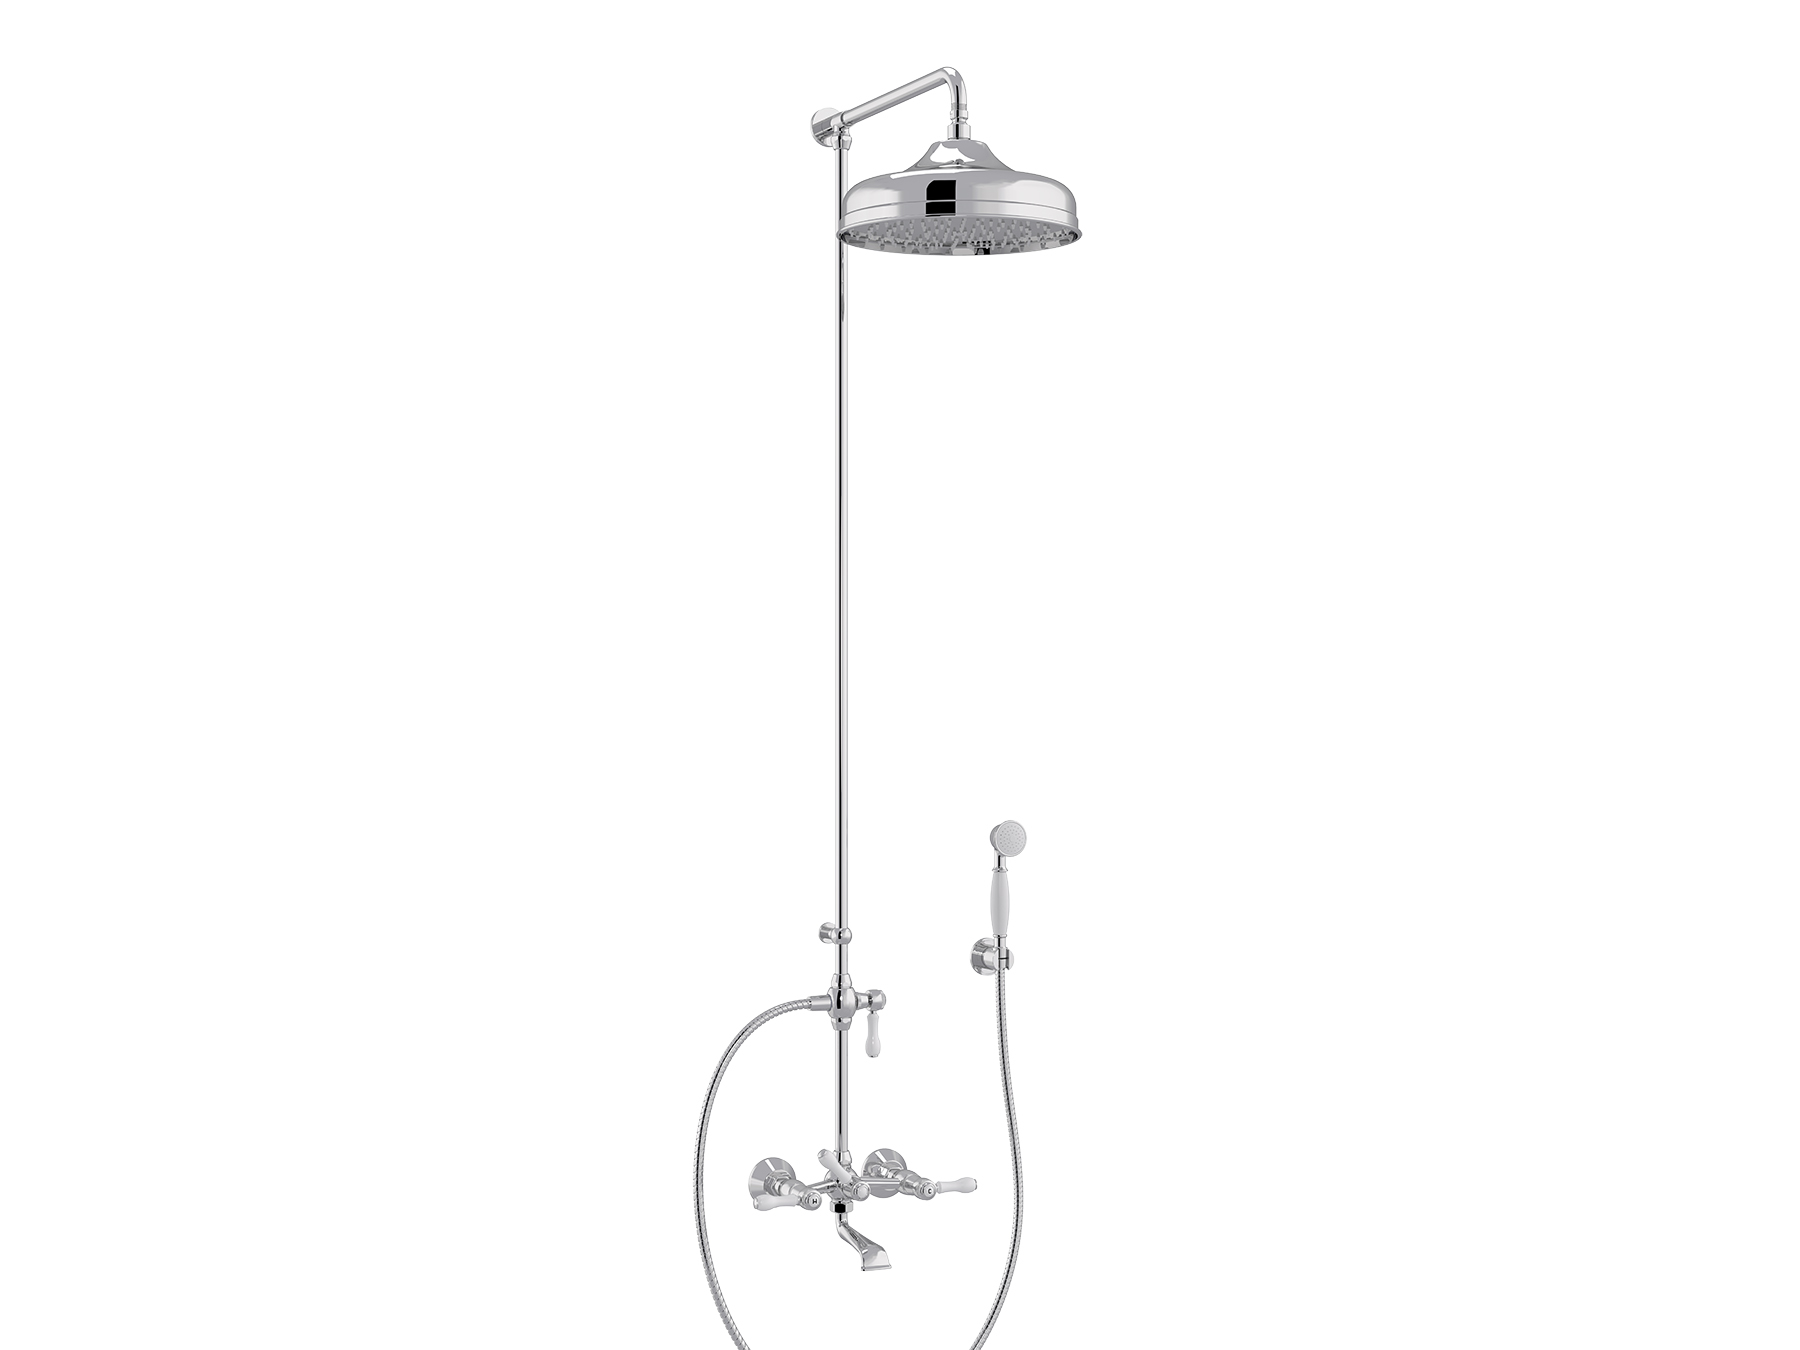 Set bath-shower mixer, head Ø300mm 1935.--.76